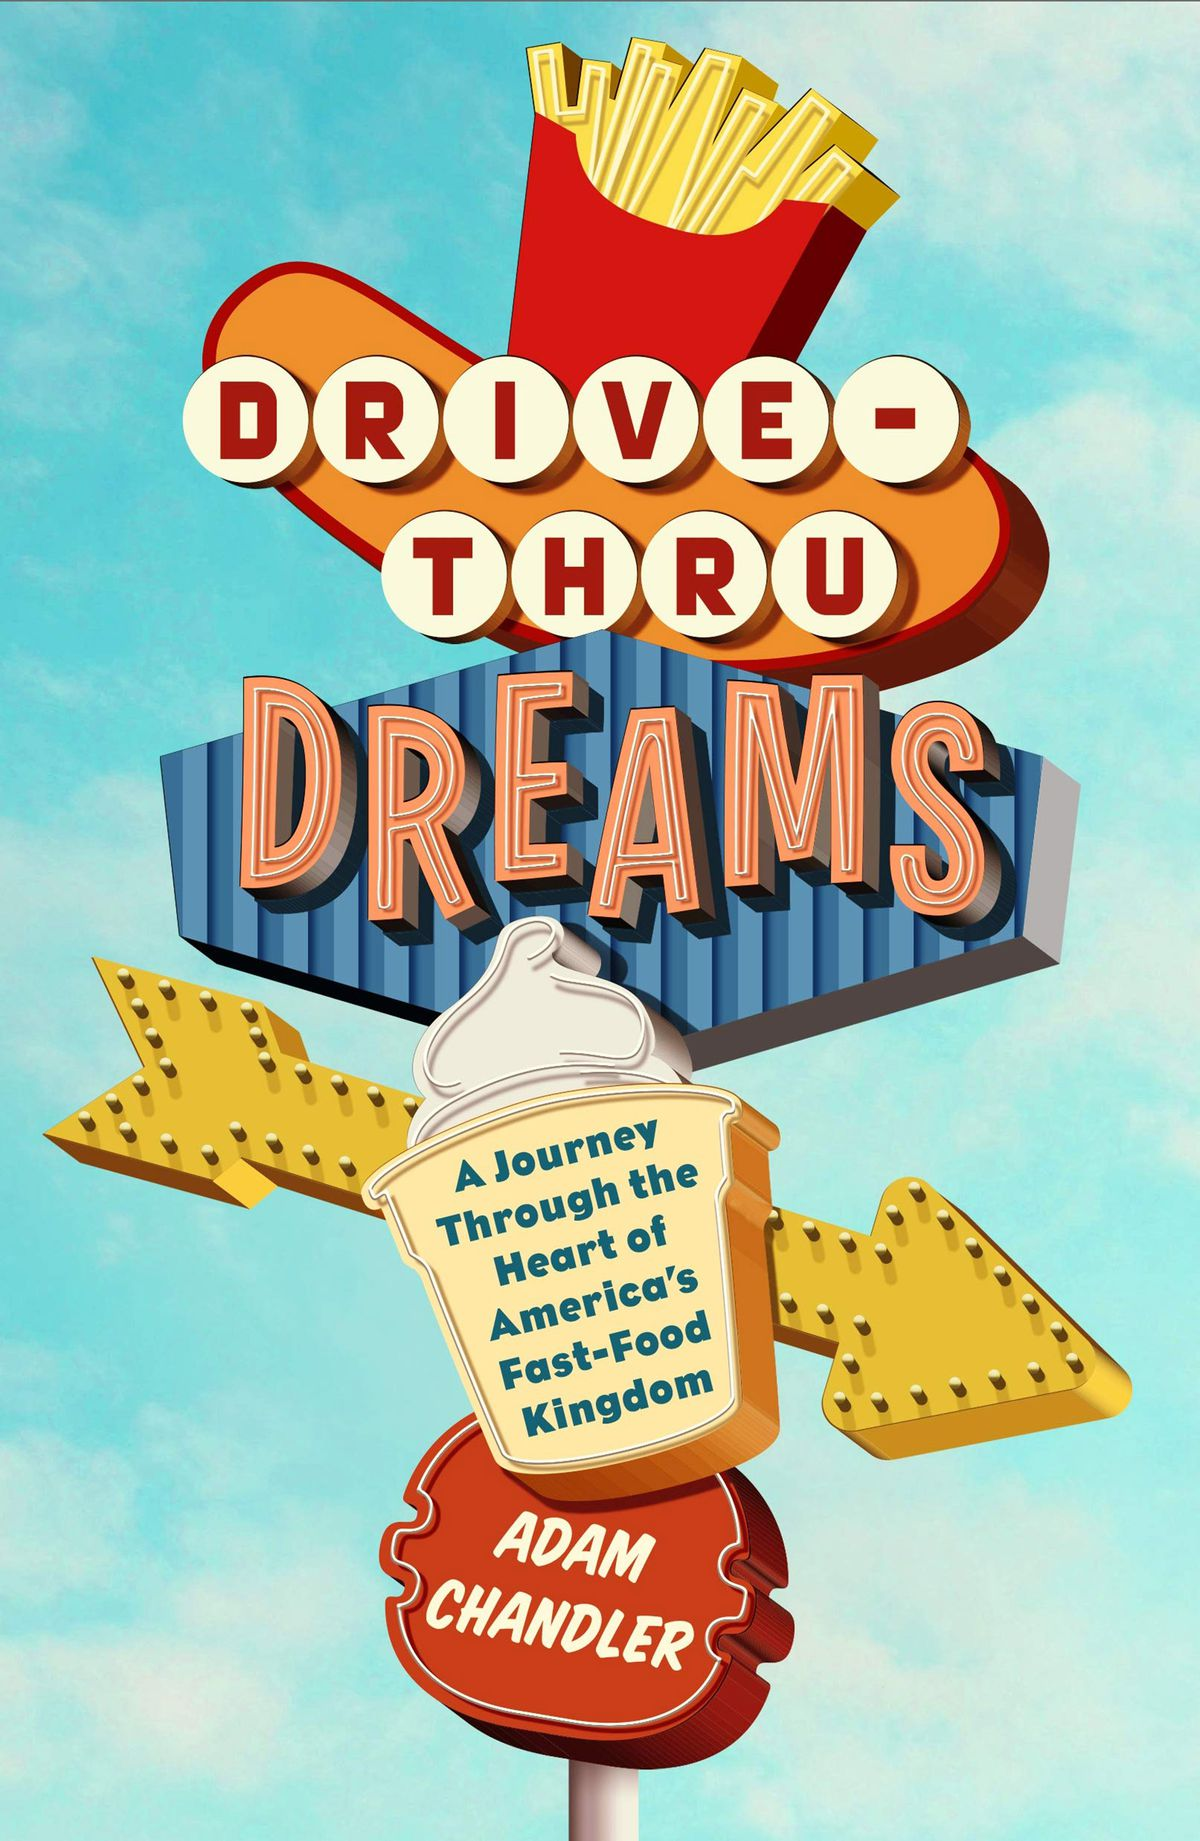 """The book cover of """"Drive-Thru Dreams,"""" an old-fashioned fast-food sign"""